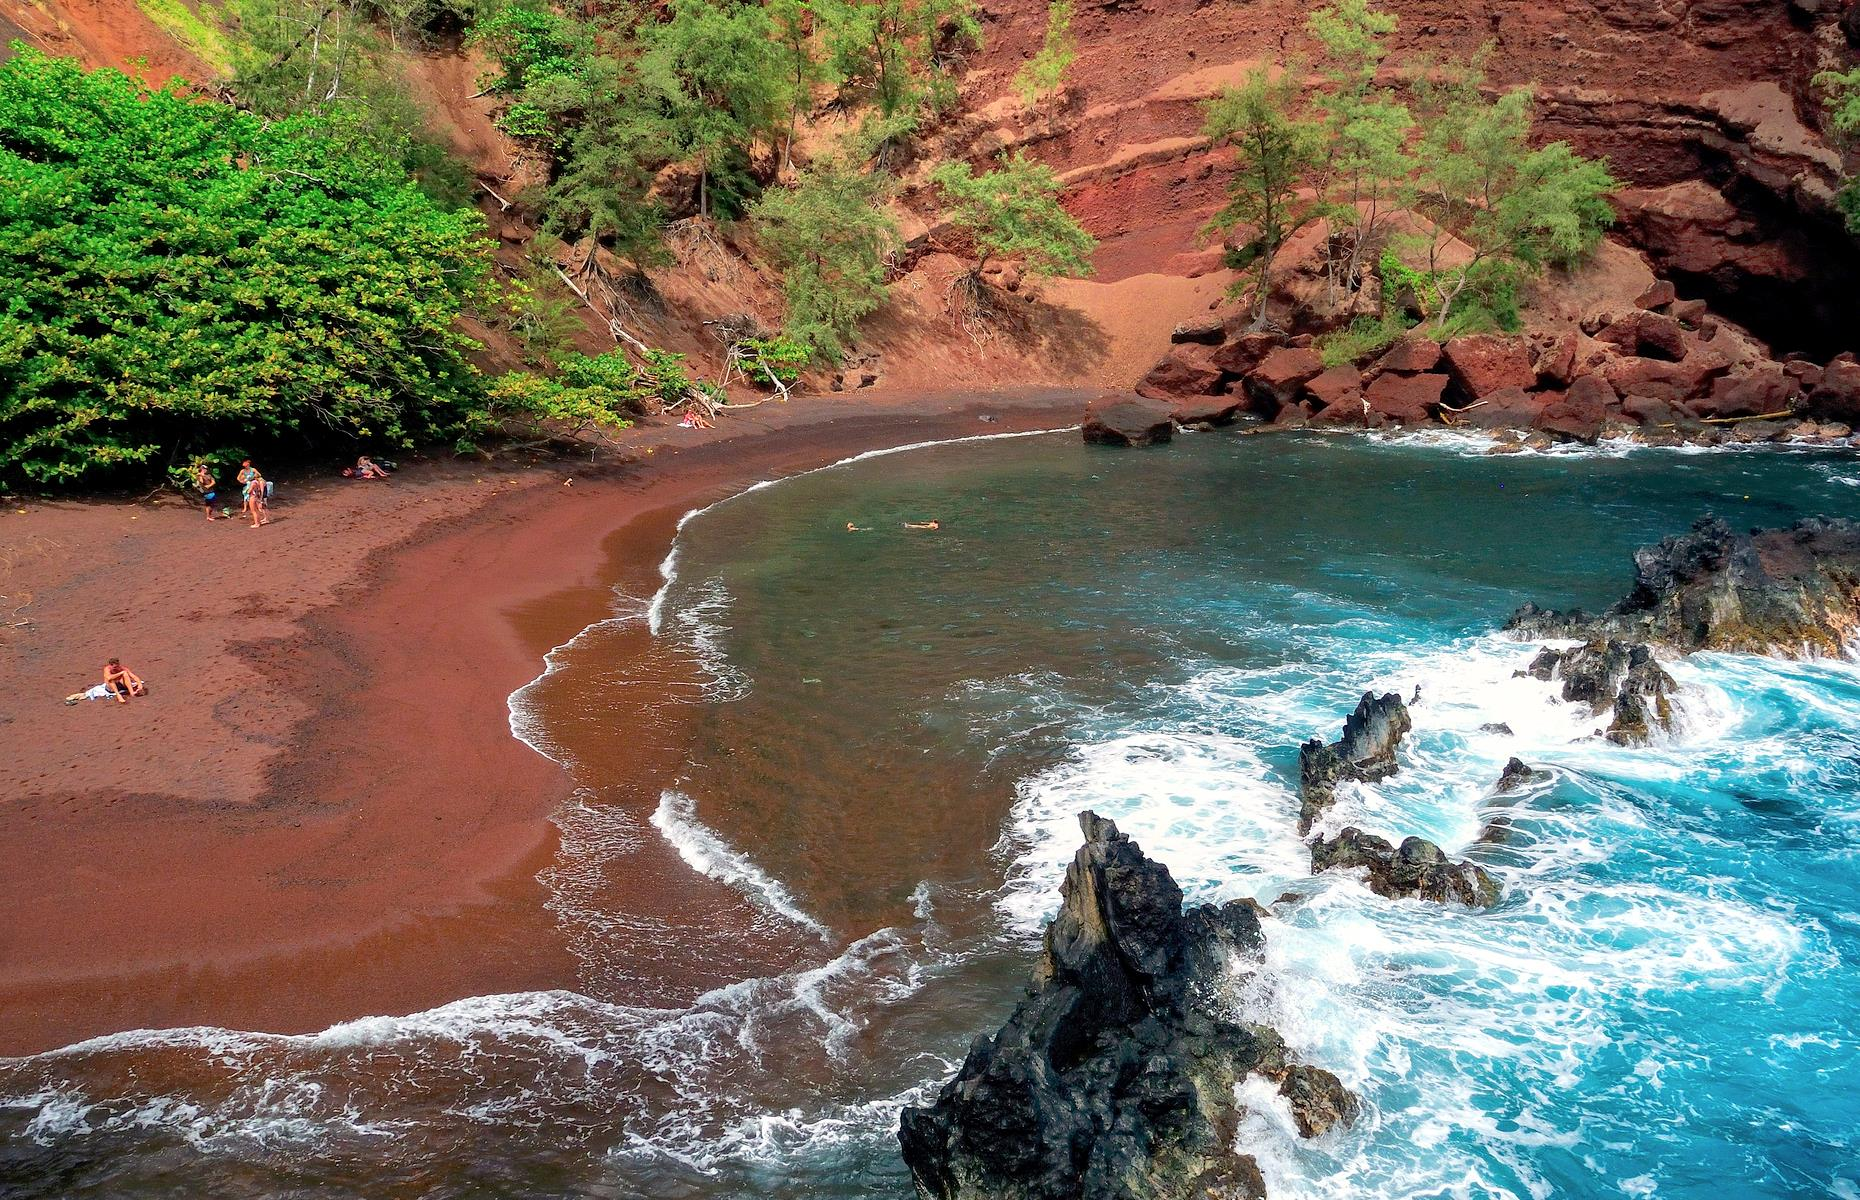 Slide 46 of 61: Also known as Kaihalulu Beach, this rust-colored strand on Maui is gloriously secluded, its sand contrasting with the bright blue waters lapping at the shore. The ruddy hue is the result of the ever-eroding volcano that backs the crescent. The beach can be reached via a steep, narrow trail (note that many consider the trail dangerous, hence the beach's relative seclusion), and there are no facilities, so come prepared.